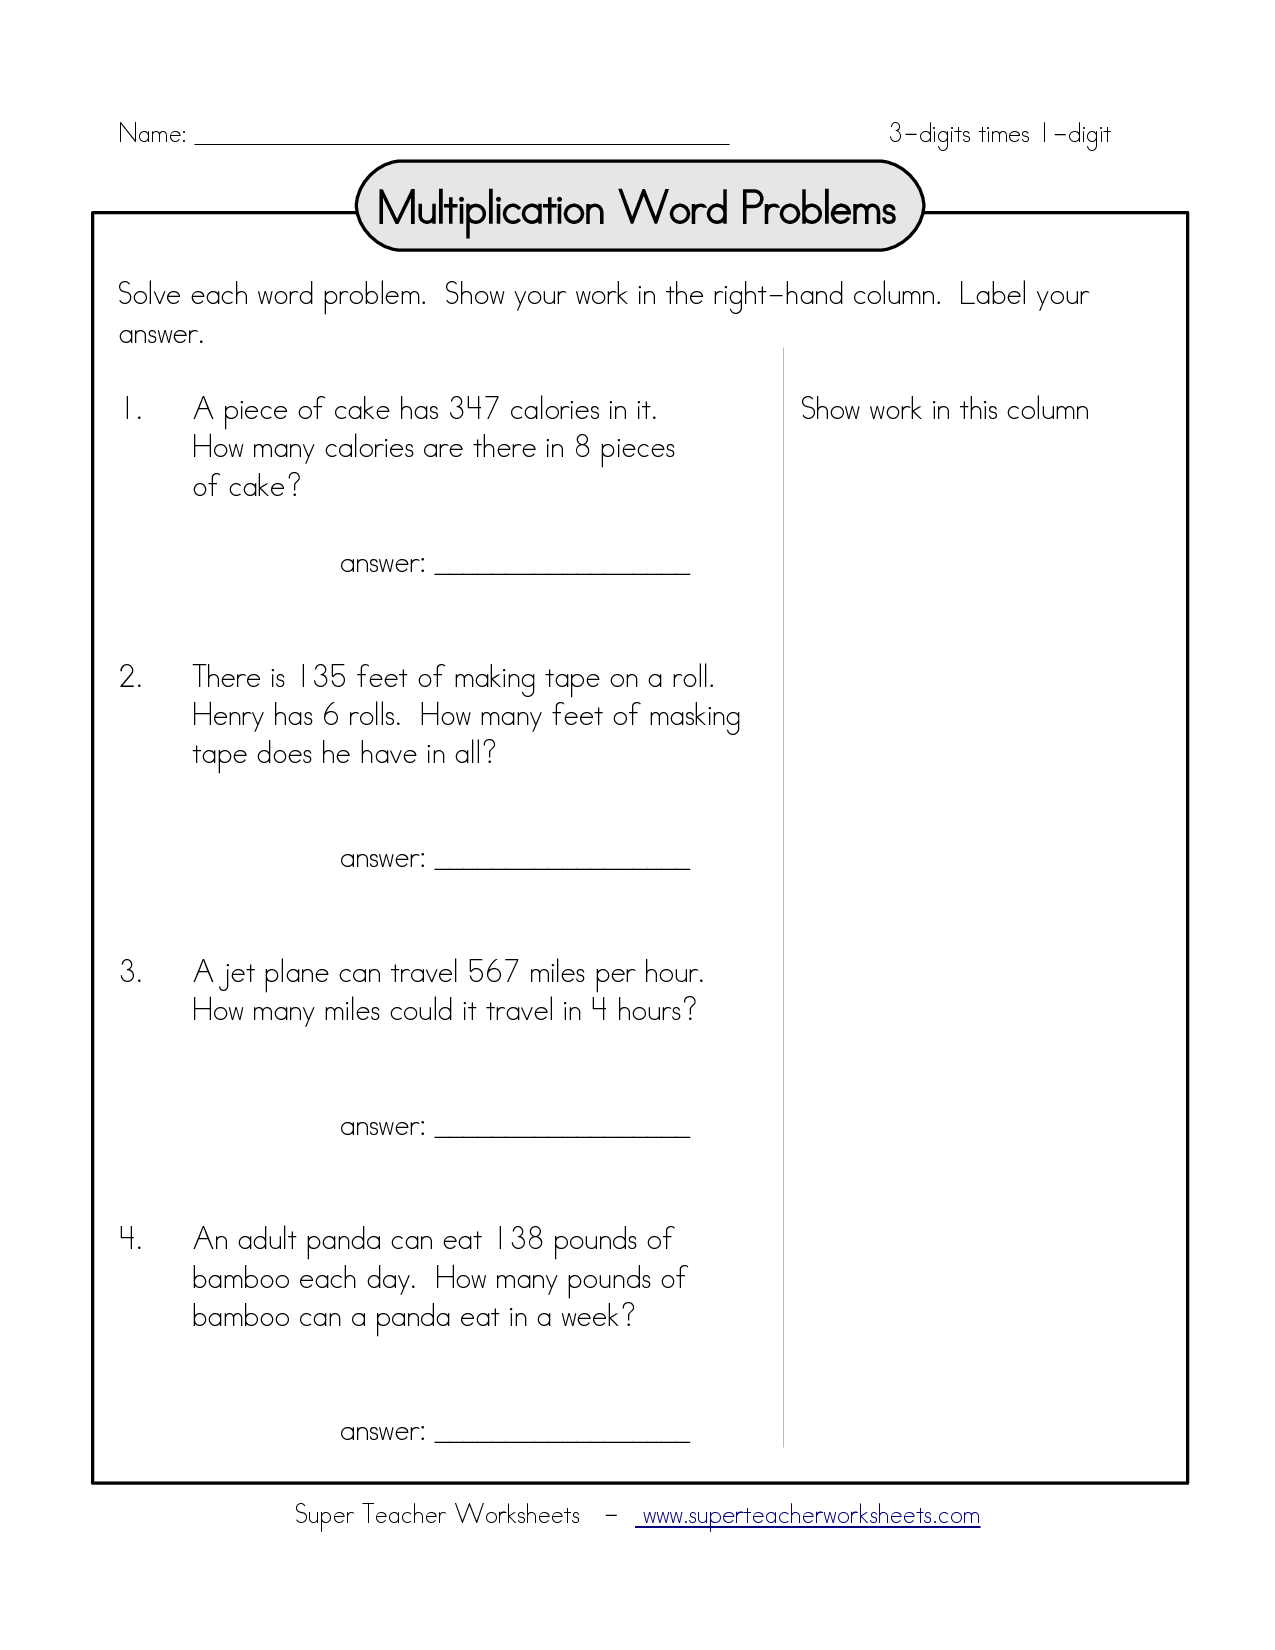 worksheet Capitalization Worksheets 4th Grade hard multiplication 2 digit problems word name 3 digits